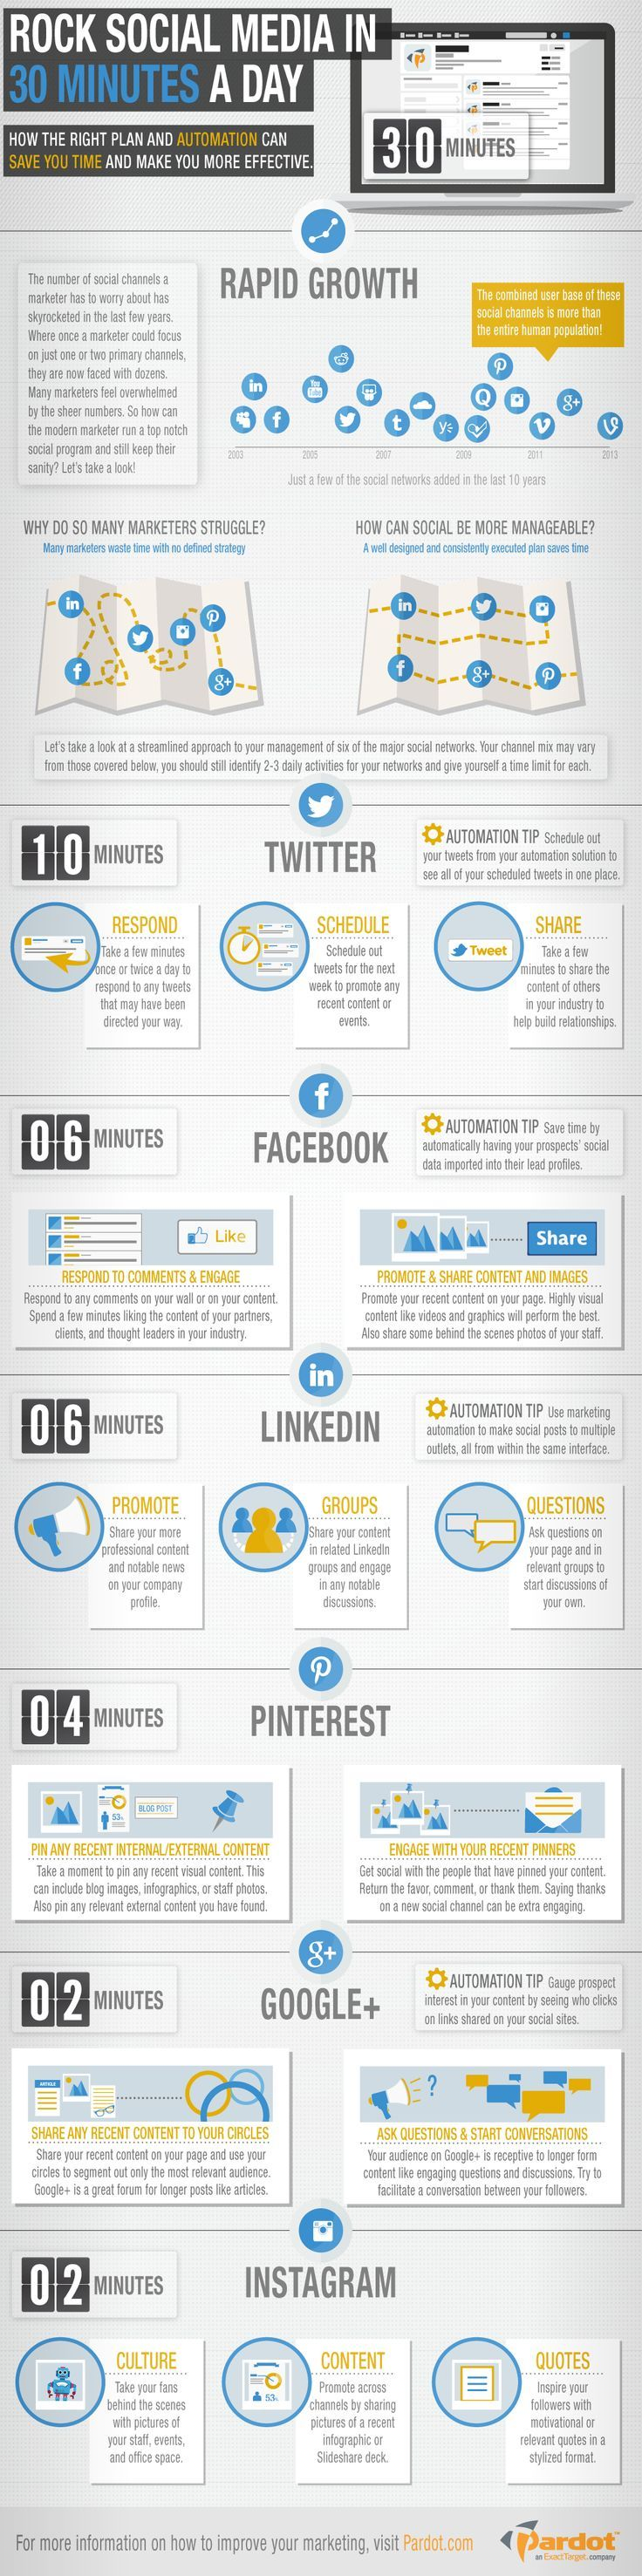 Social Media Management In 30 Minutes Per Day #infographic